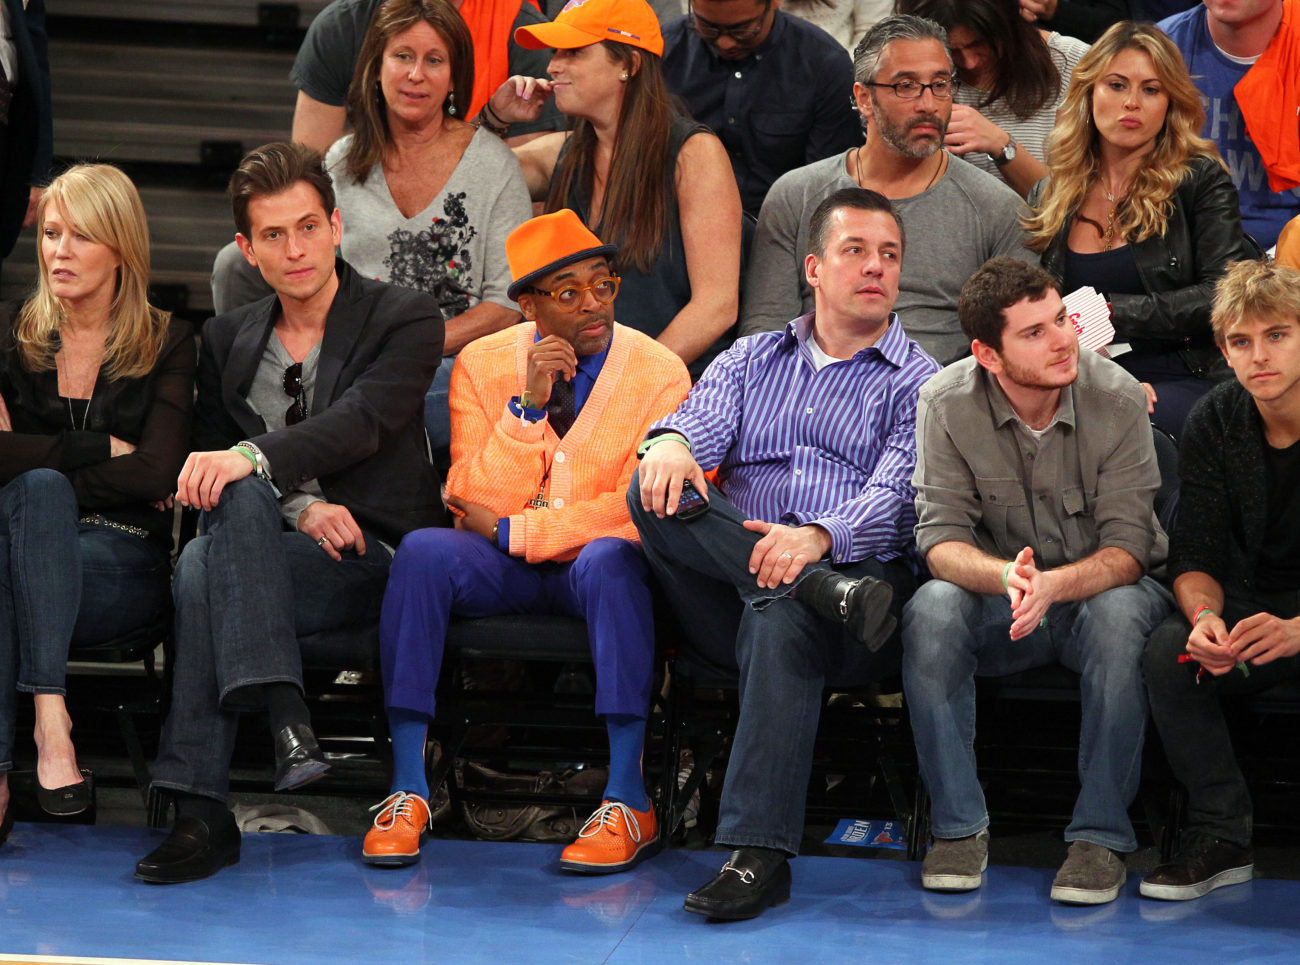 May 5, 2013; New York, NY, USA; Spike Lee watches the game between the New York Knicks and Indian Pacers at Madison Square Garden. Mandatory Credit: Danny Wild-USA TODAY Sports